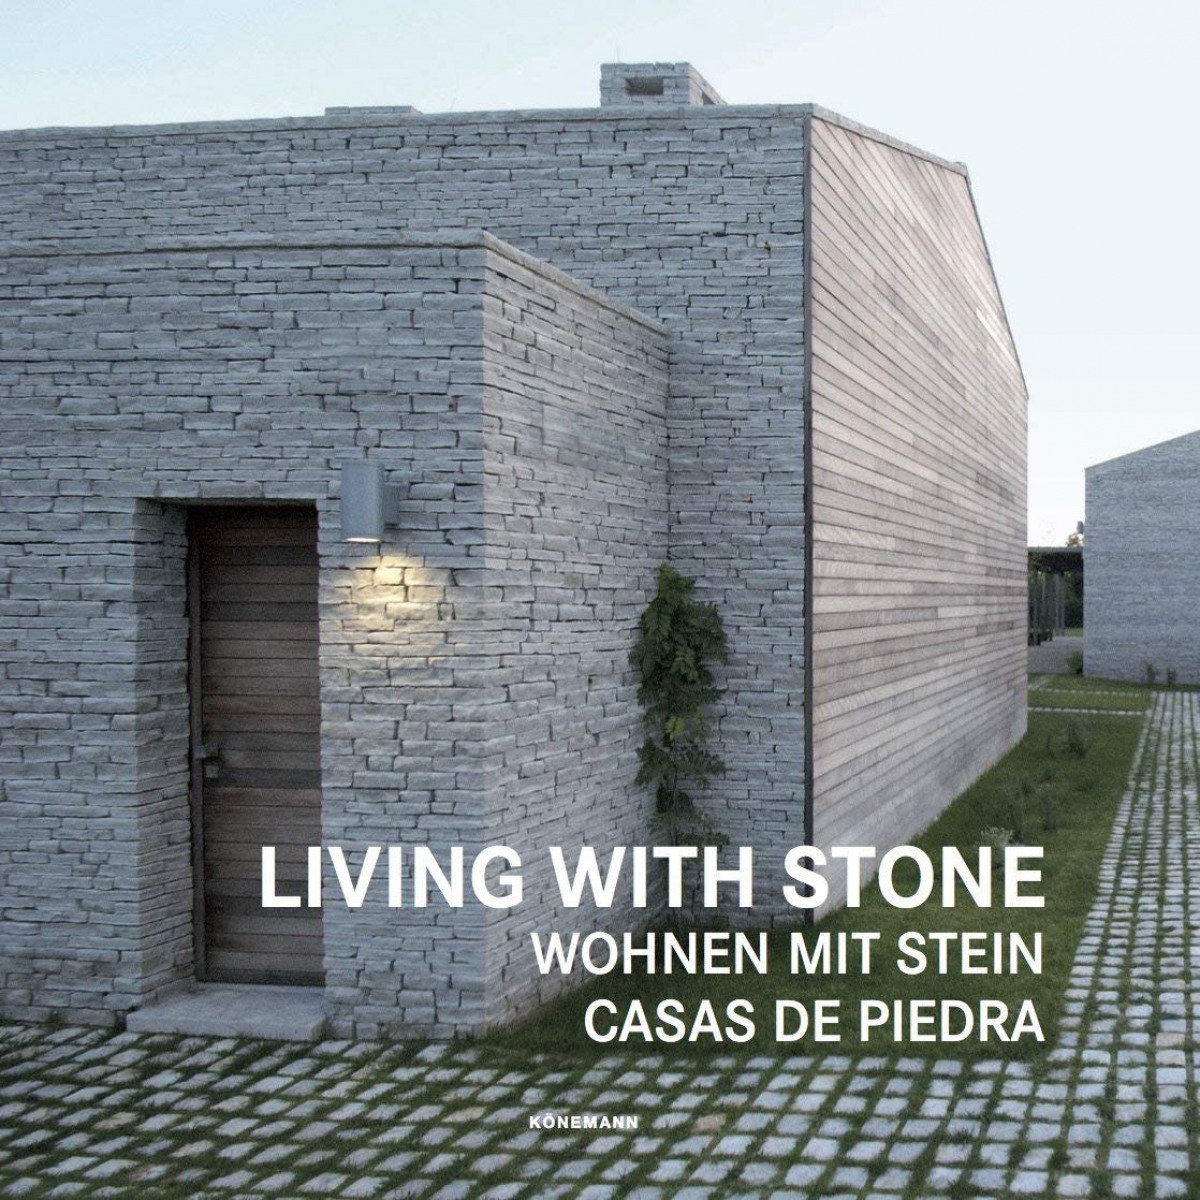 LIVING WITH STONES 9783741920523